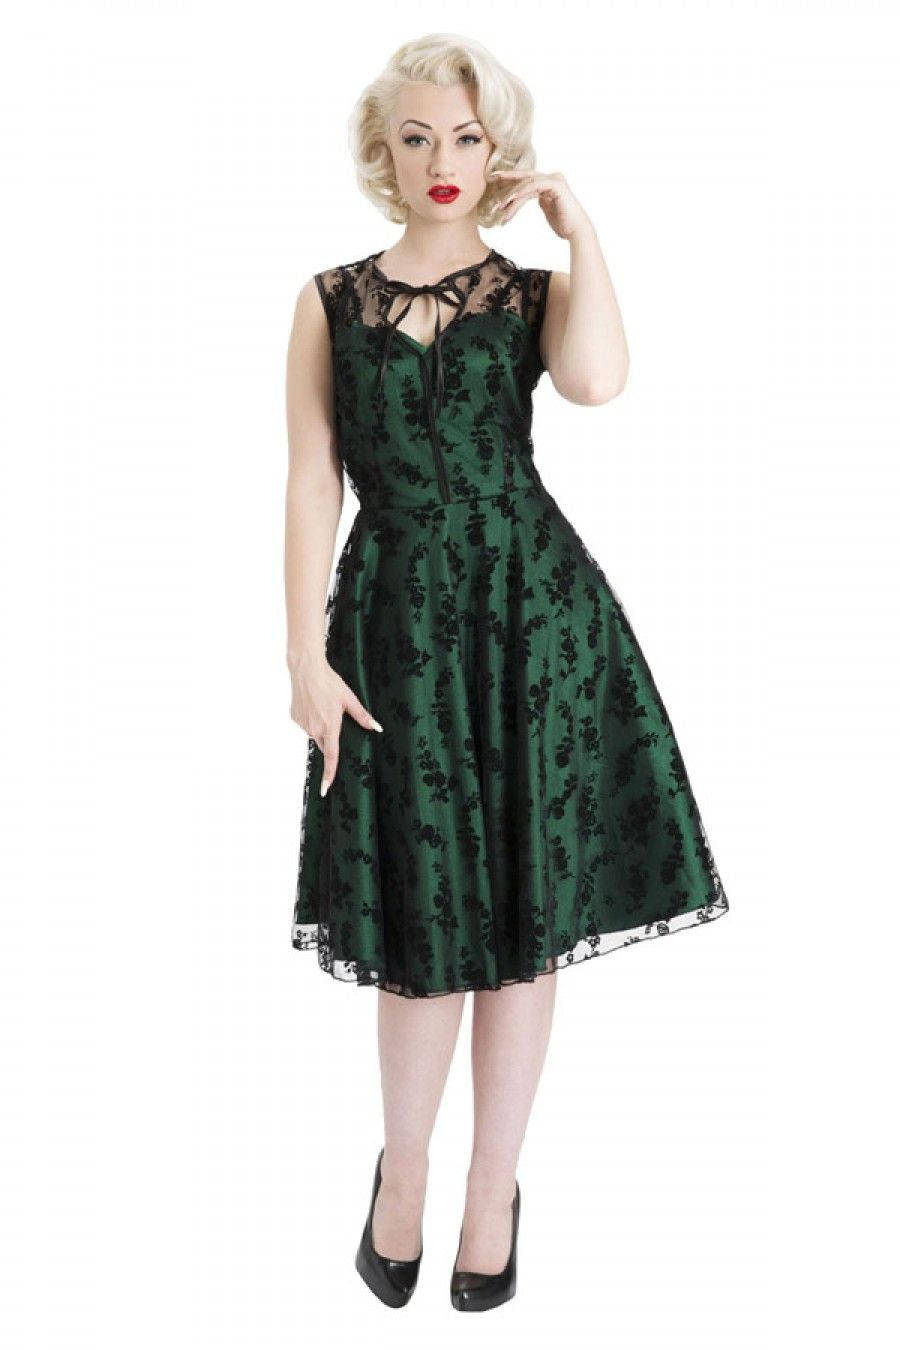 Green dress with lace overlay  Womenus Flocked Floral Overlay Flair Dress  Green  Christmas List